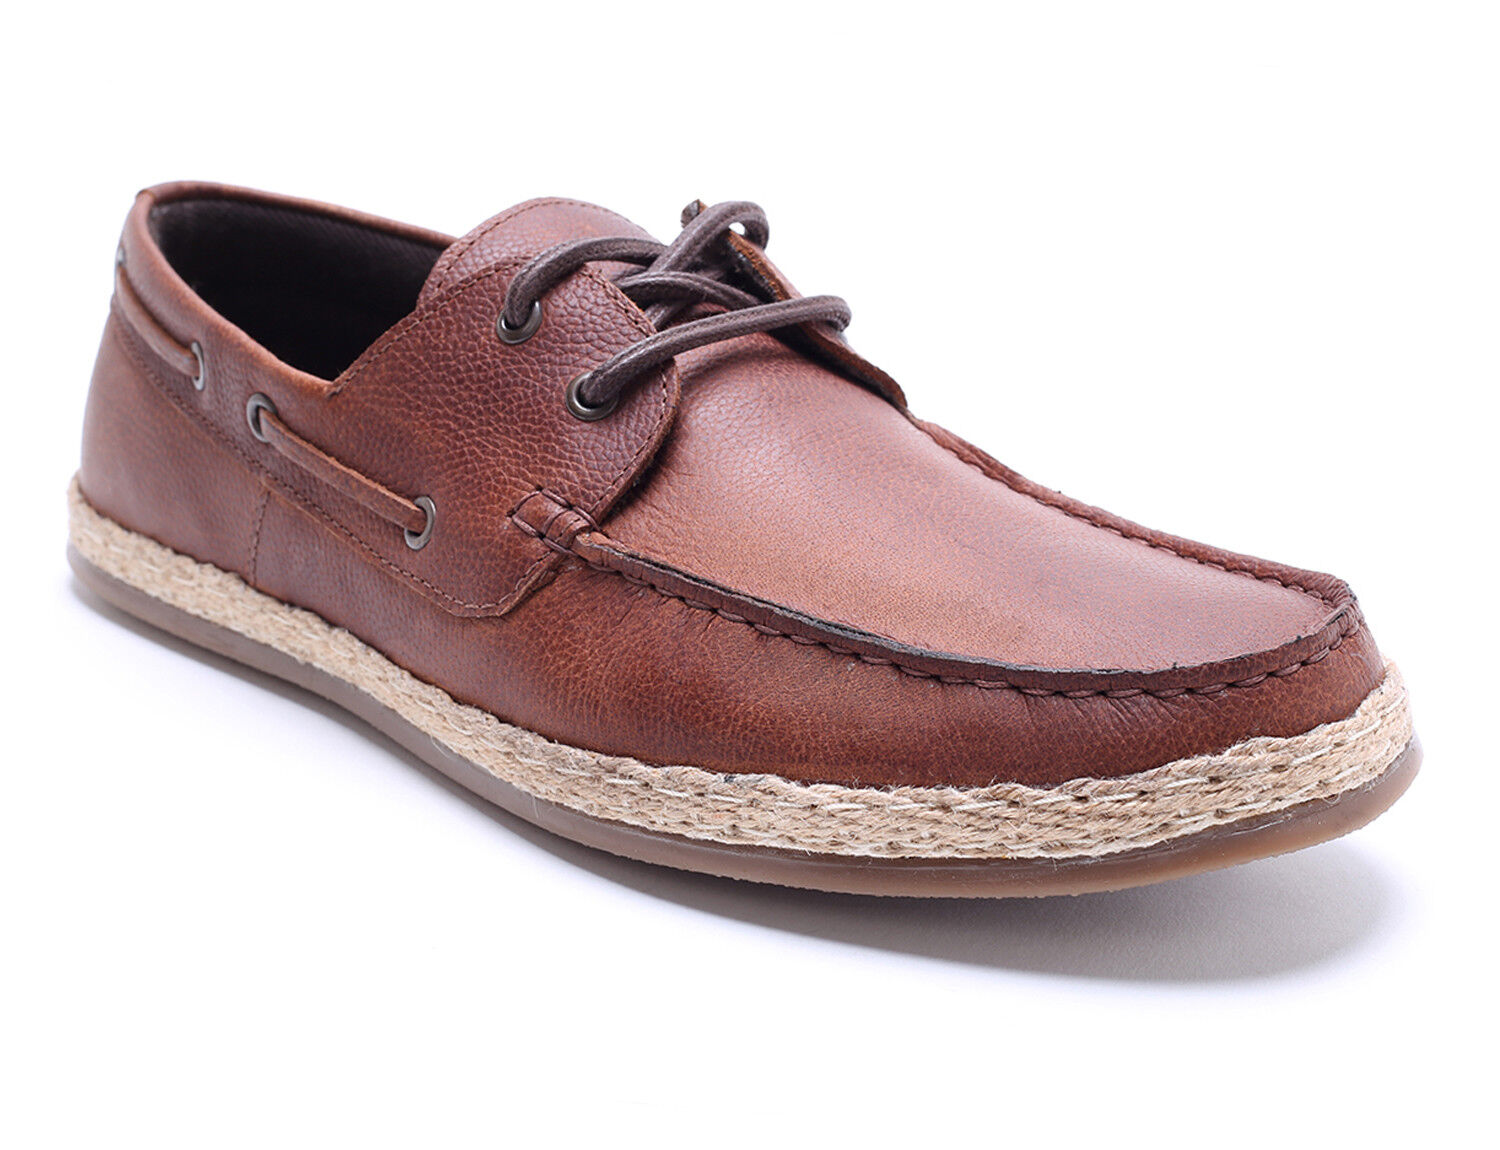 Red Tape Ruskin Tan Leather Mens Casual Boat shoes  RRP